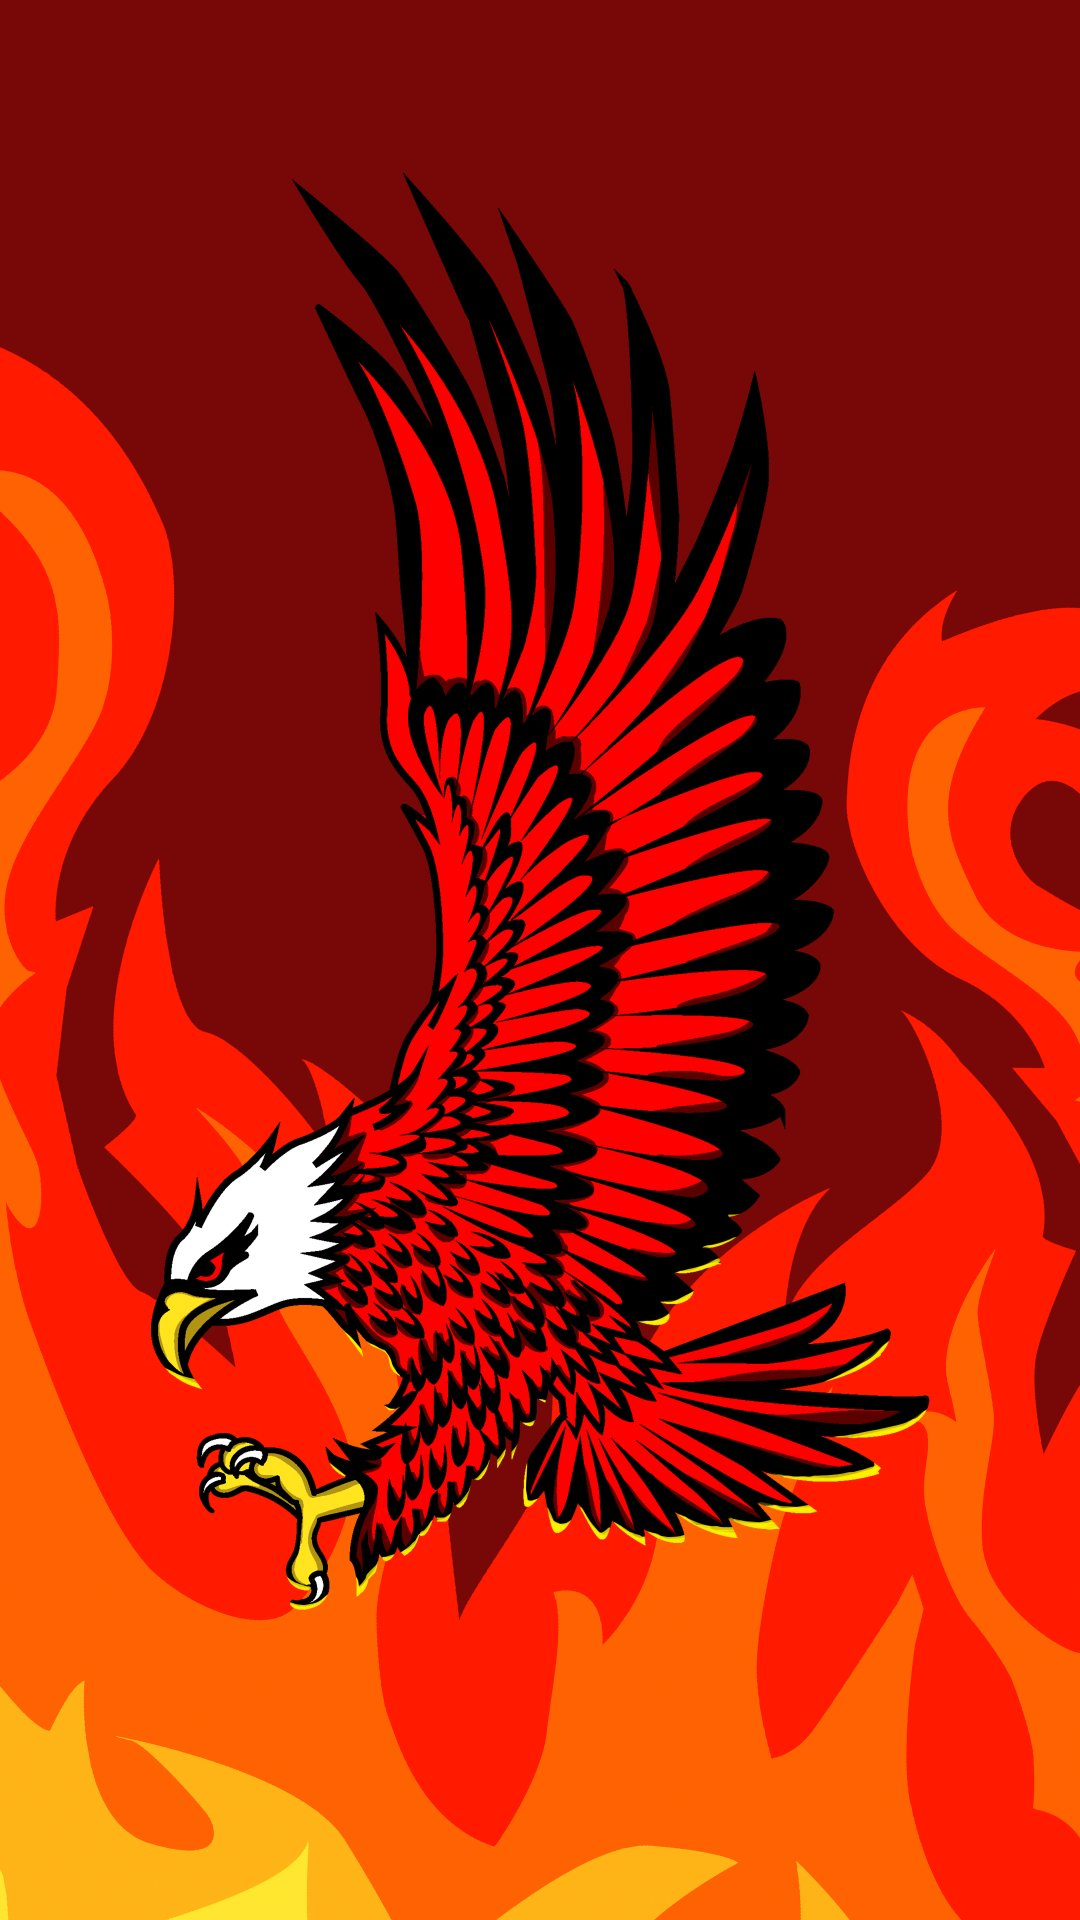 yellow,red,Anger,Eagle,Birds,Art,4K